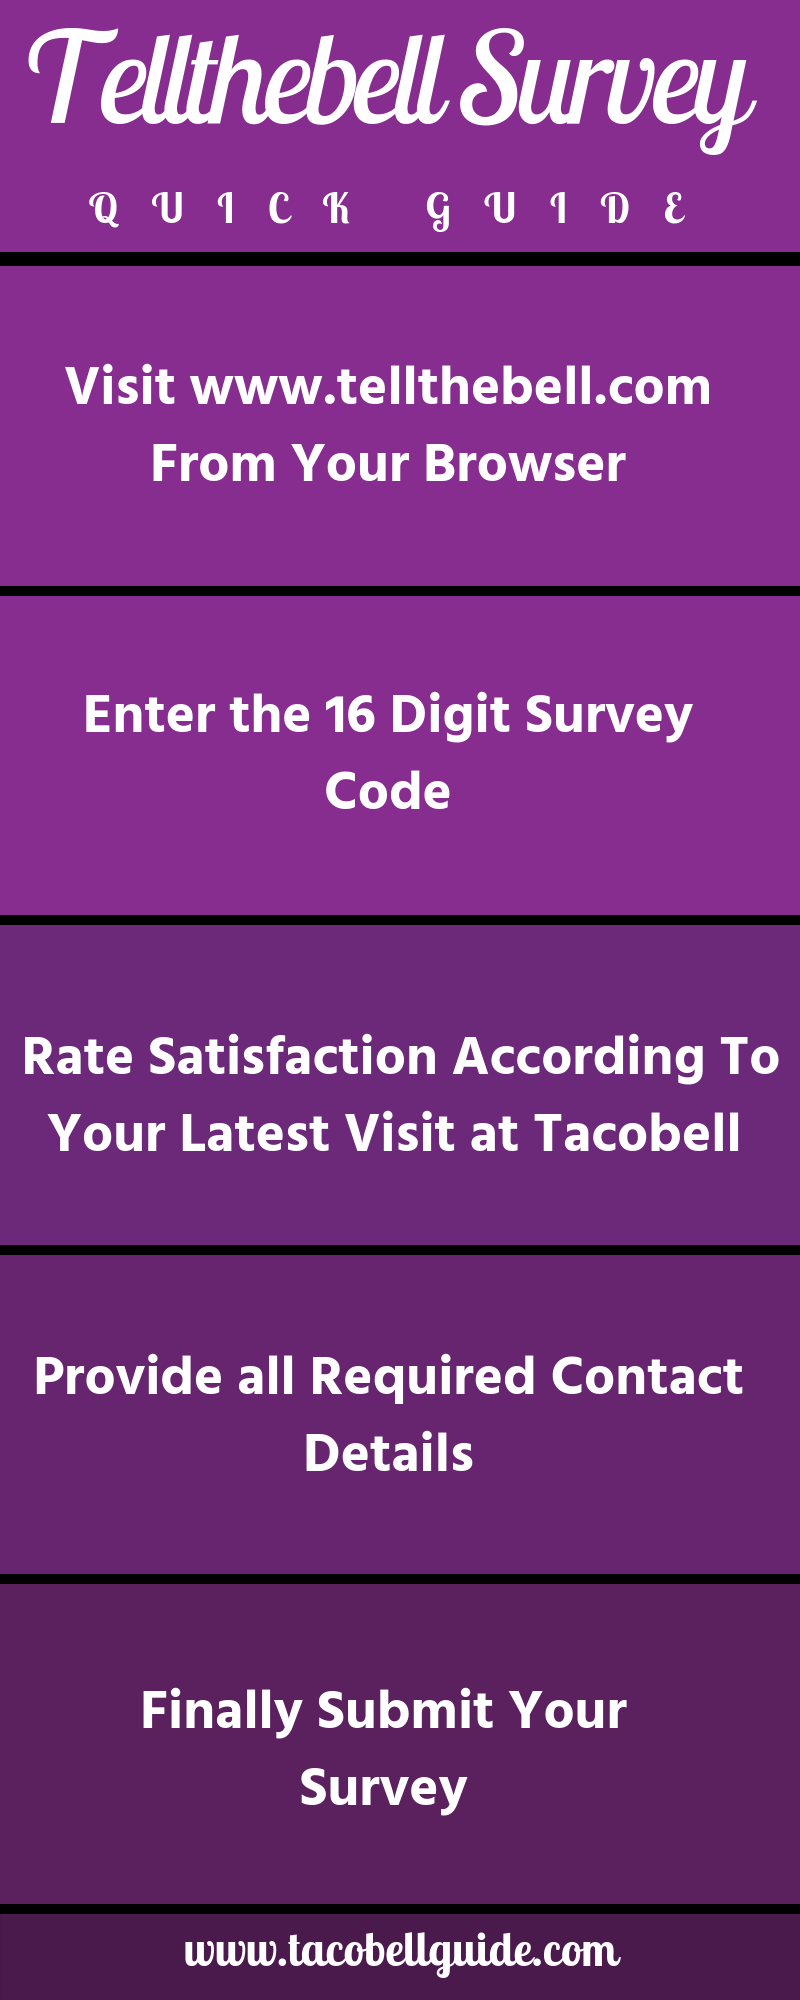 Tellthebell Survey Quick Guide